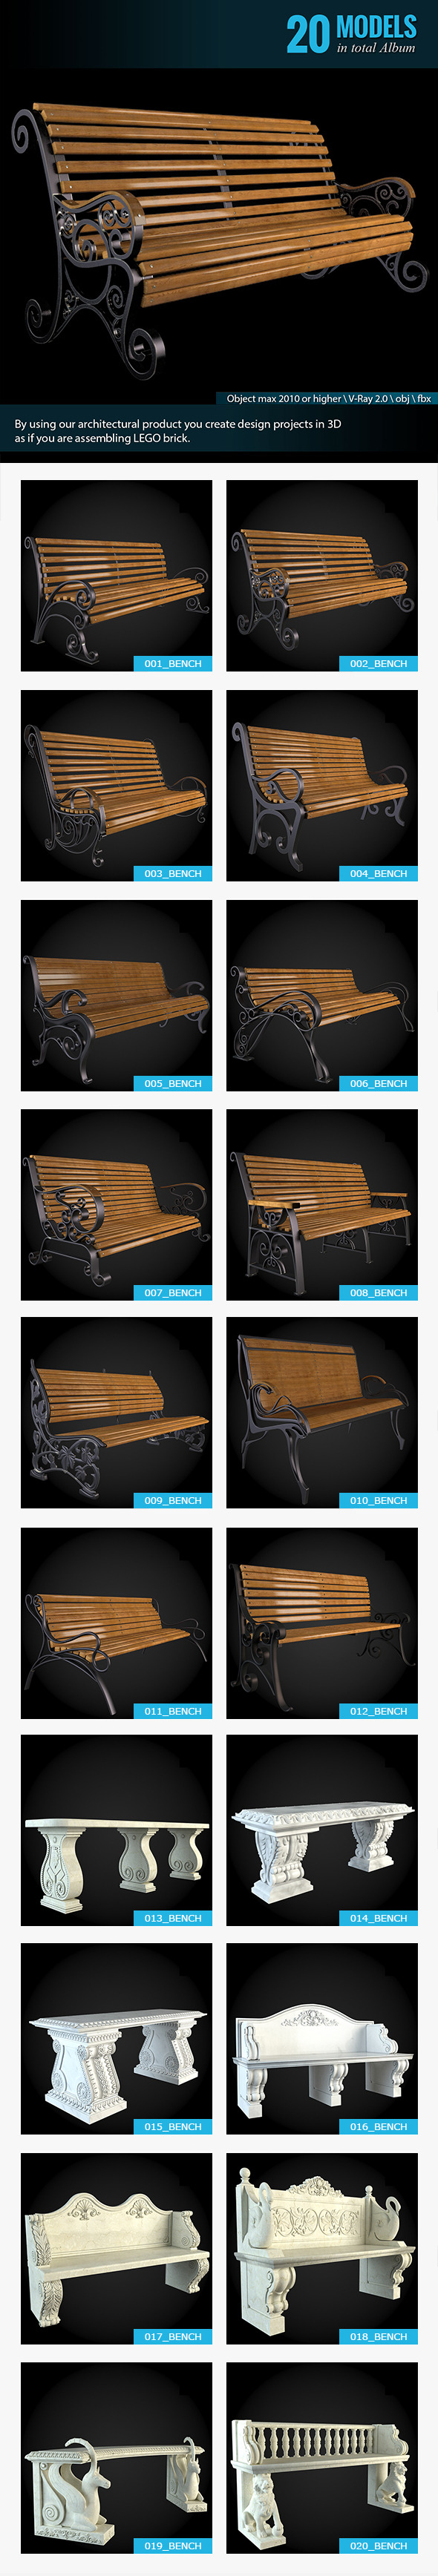 Benches Collection - 3DOcean Item for Sale